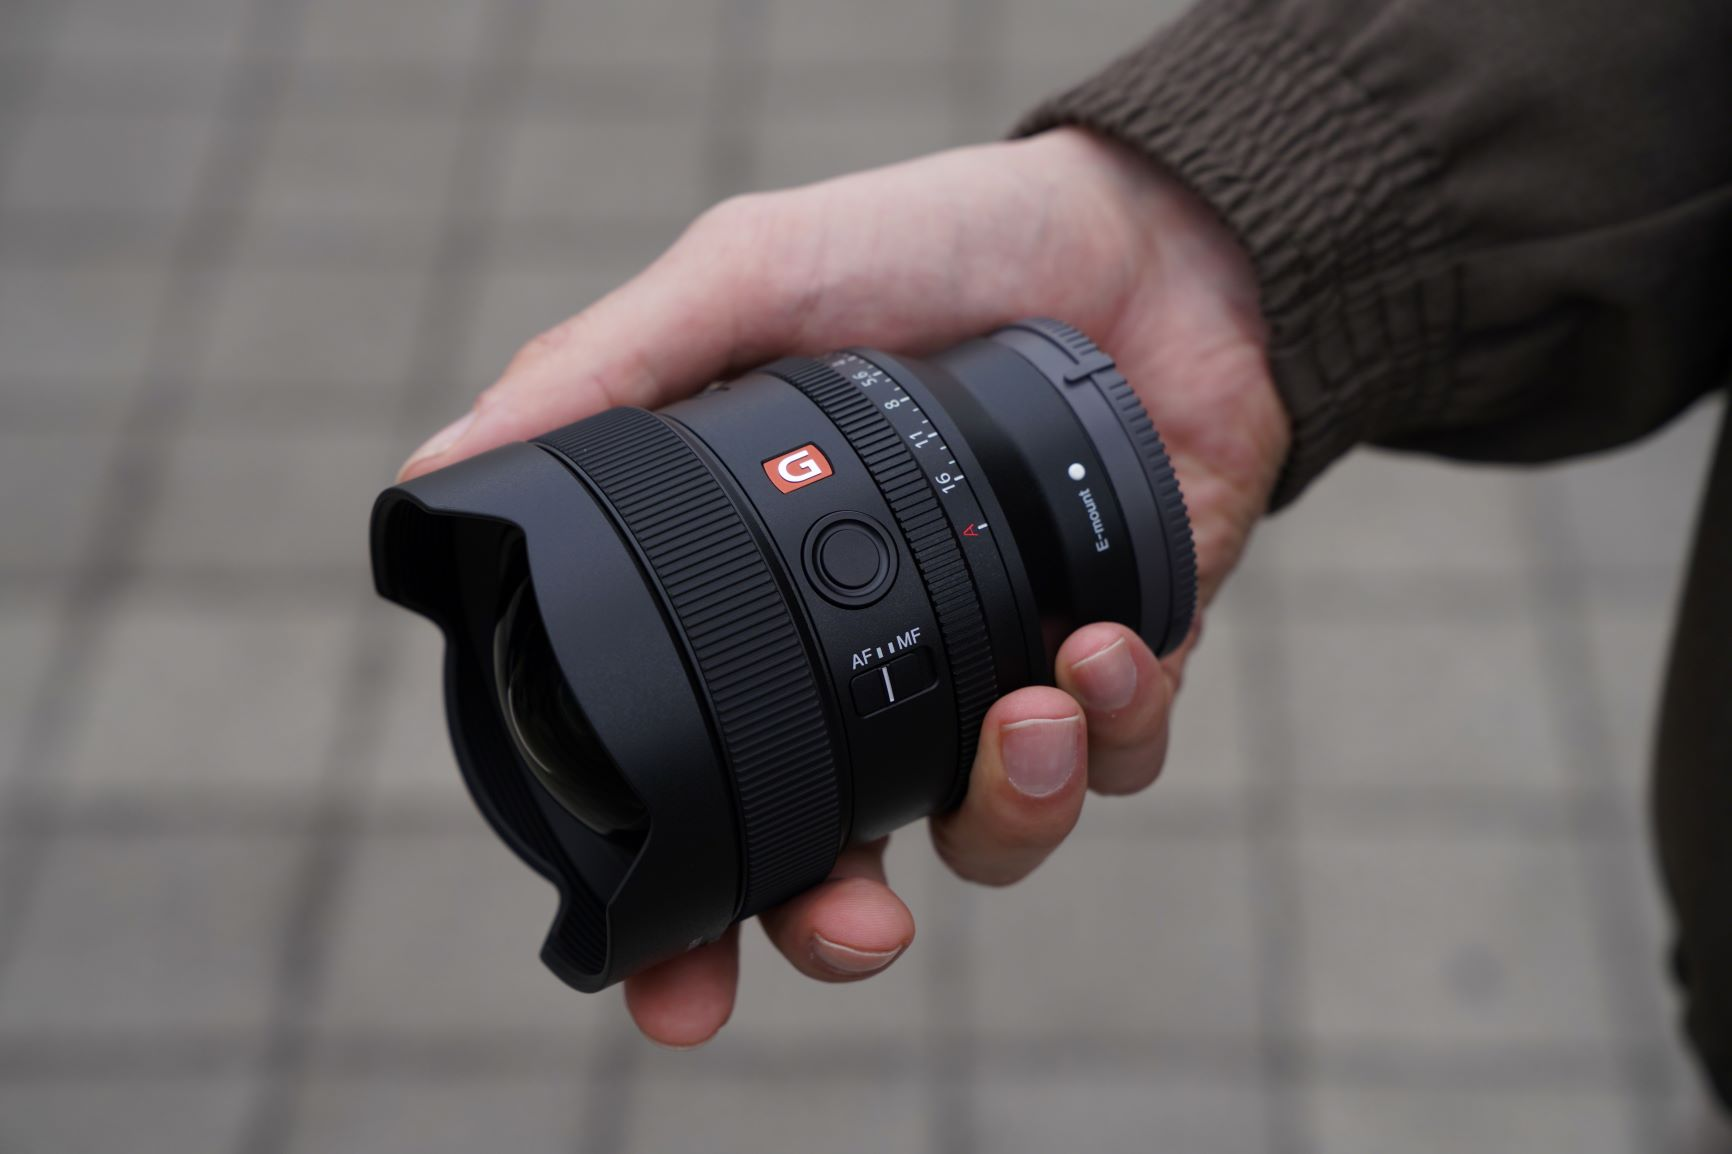 Sony FE 14mm F1.8 GM hand